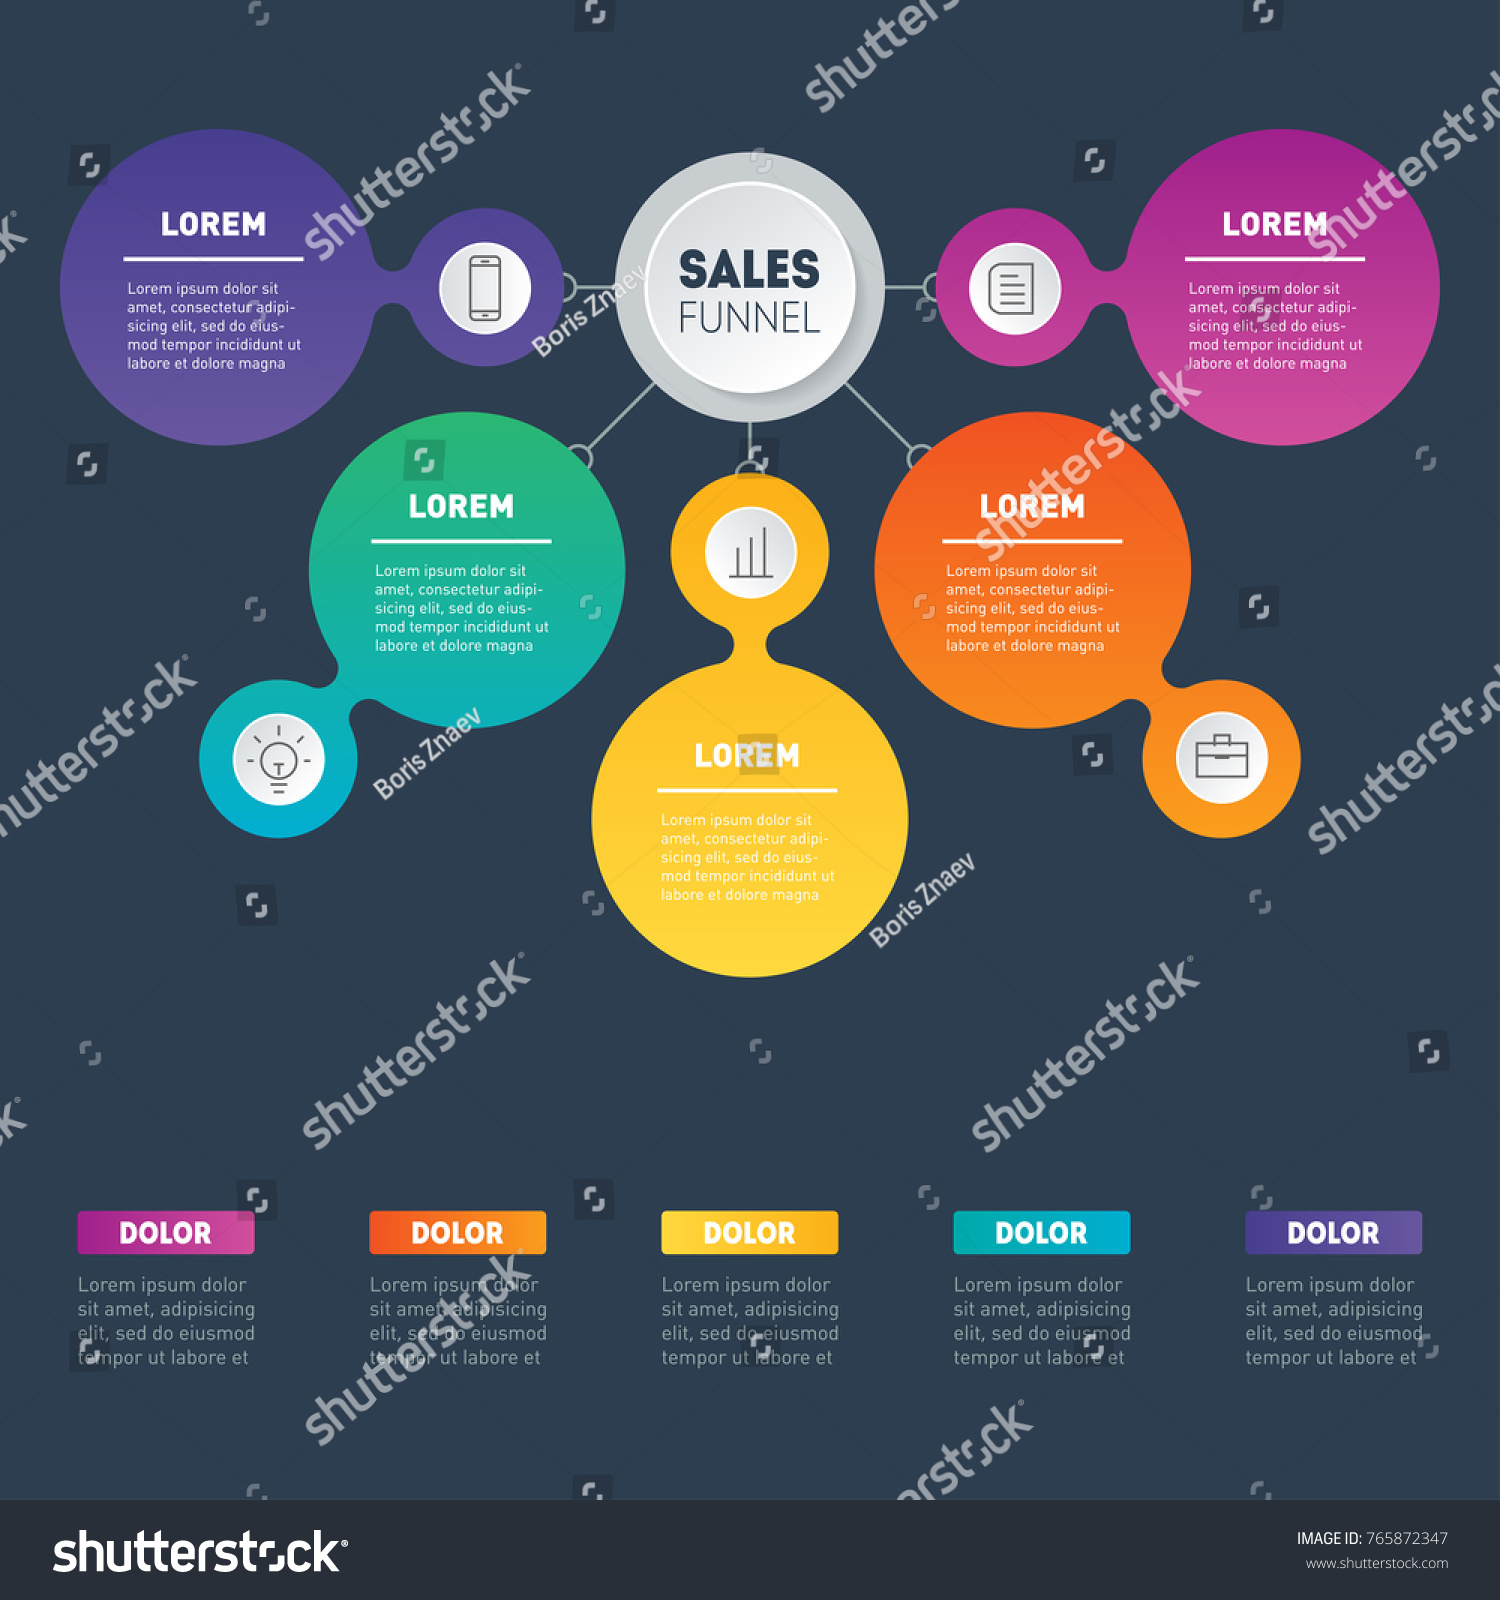 Web Template Sales Pipeline Purchase Funnel Stock Vector Royalty